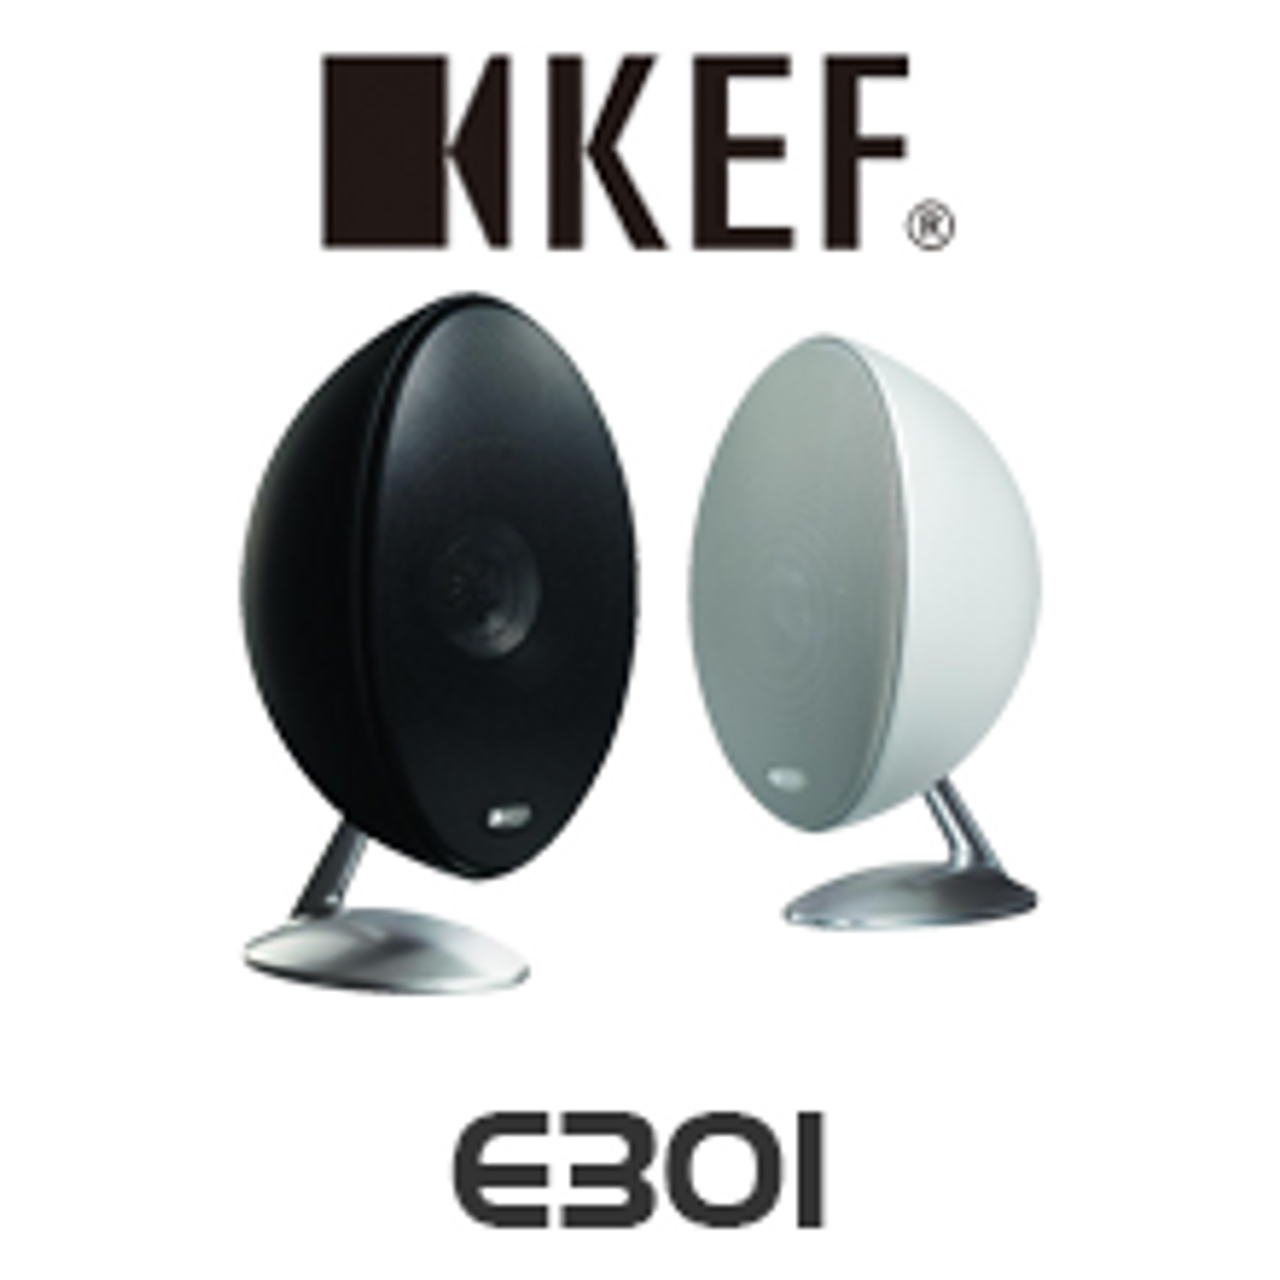 kef e301 satellite speakers review